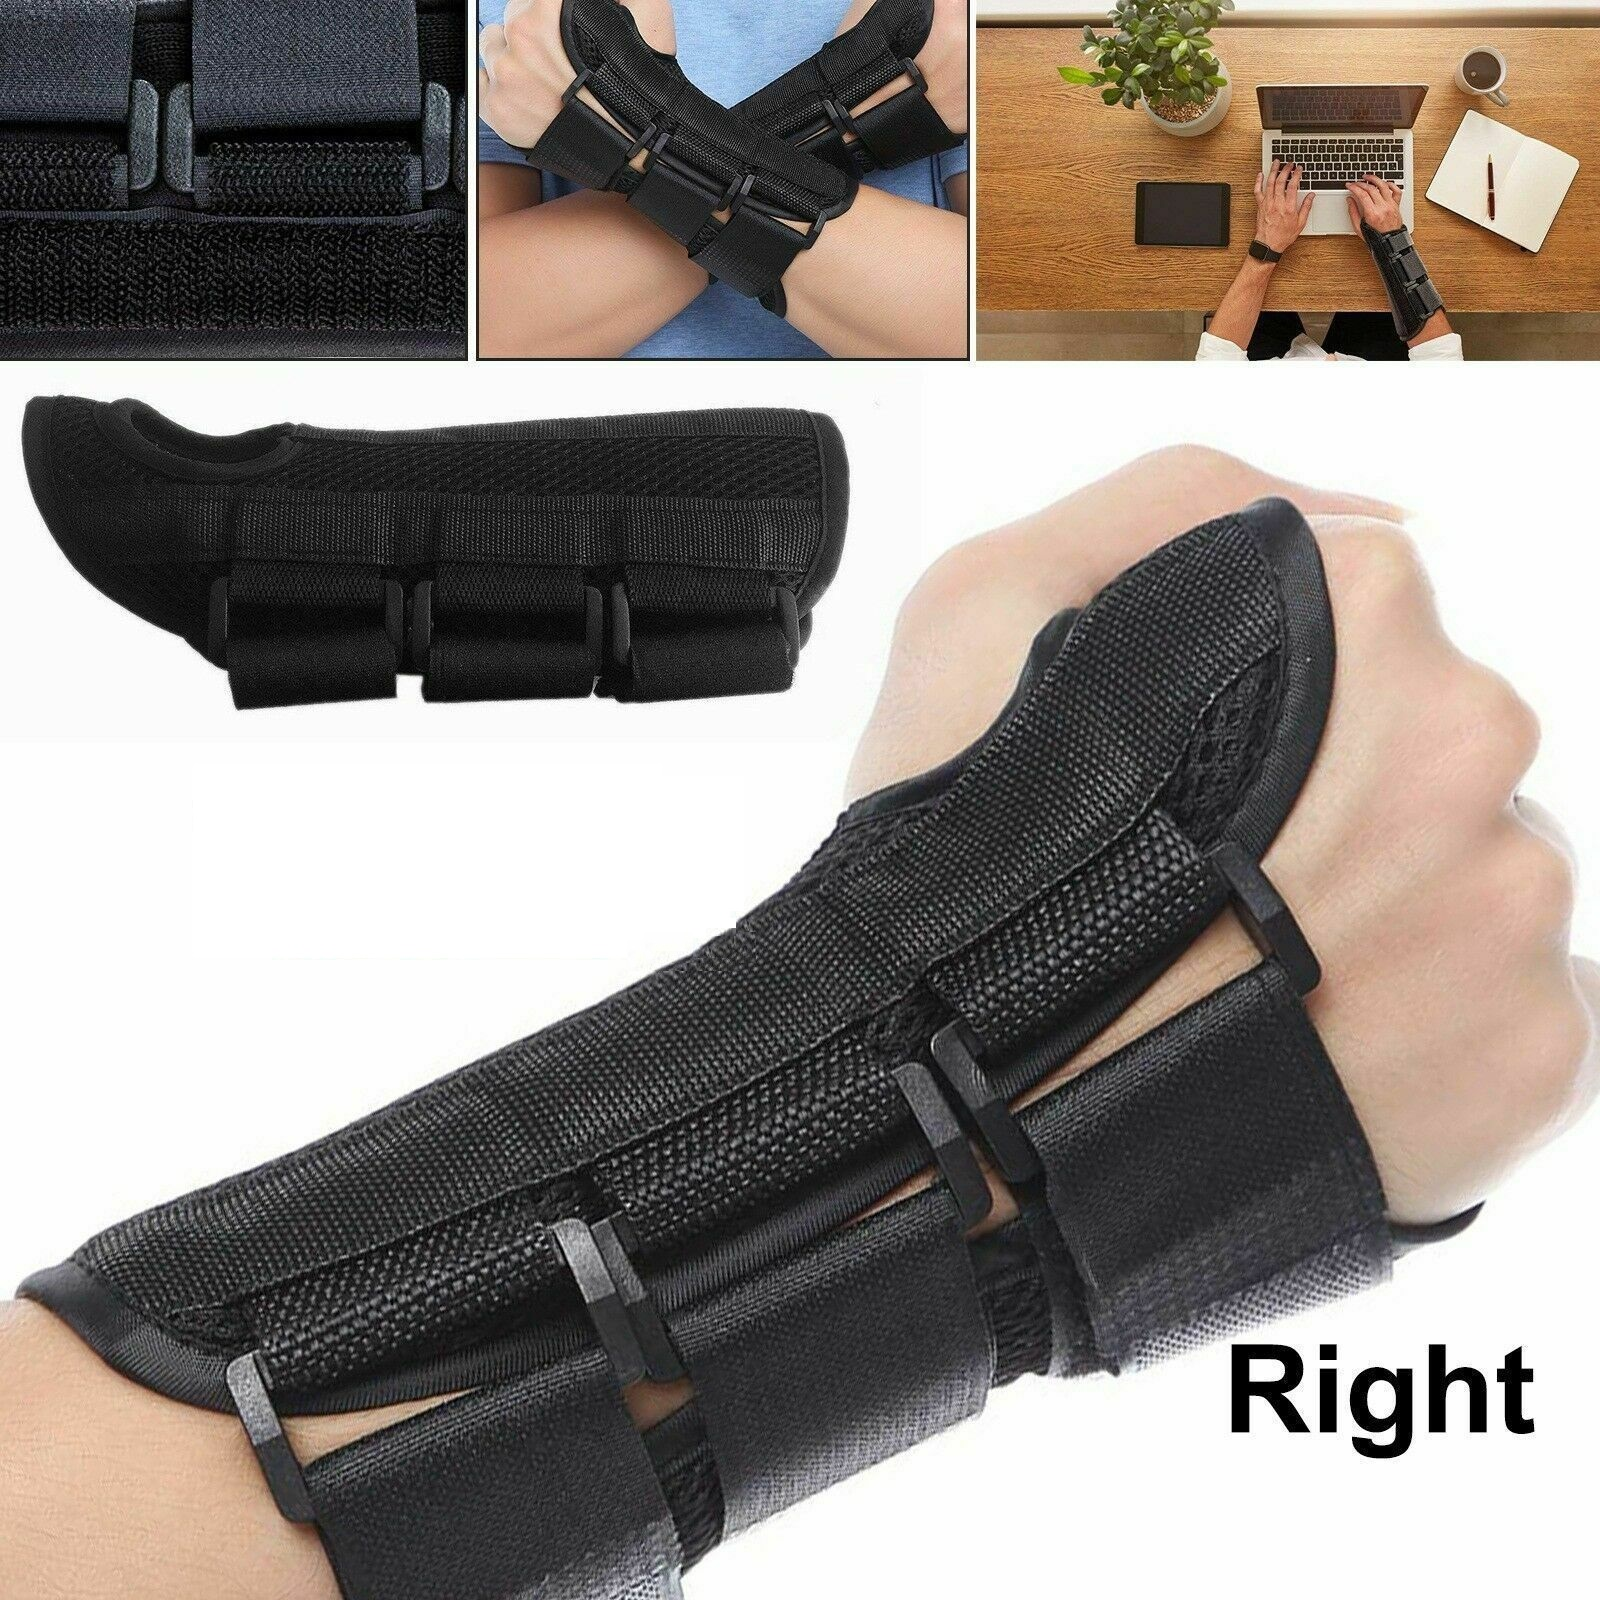 Small Black Right Hand Adjustable Wrist Support Brace Carpal Tunnel Fractures Splint